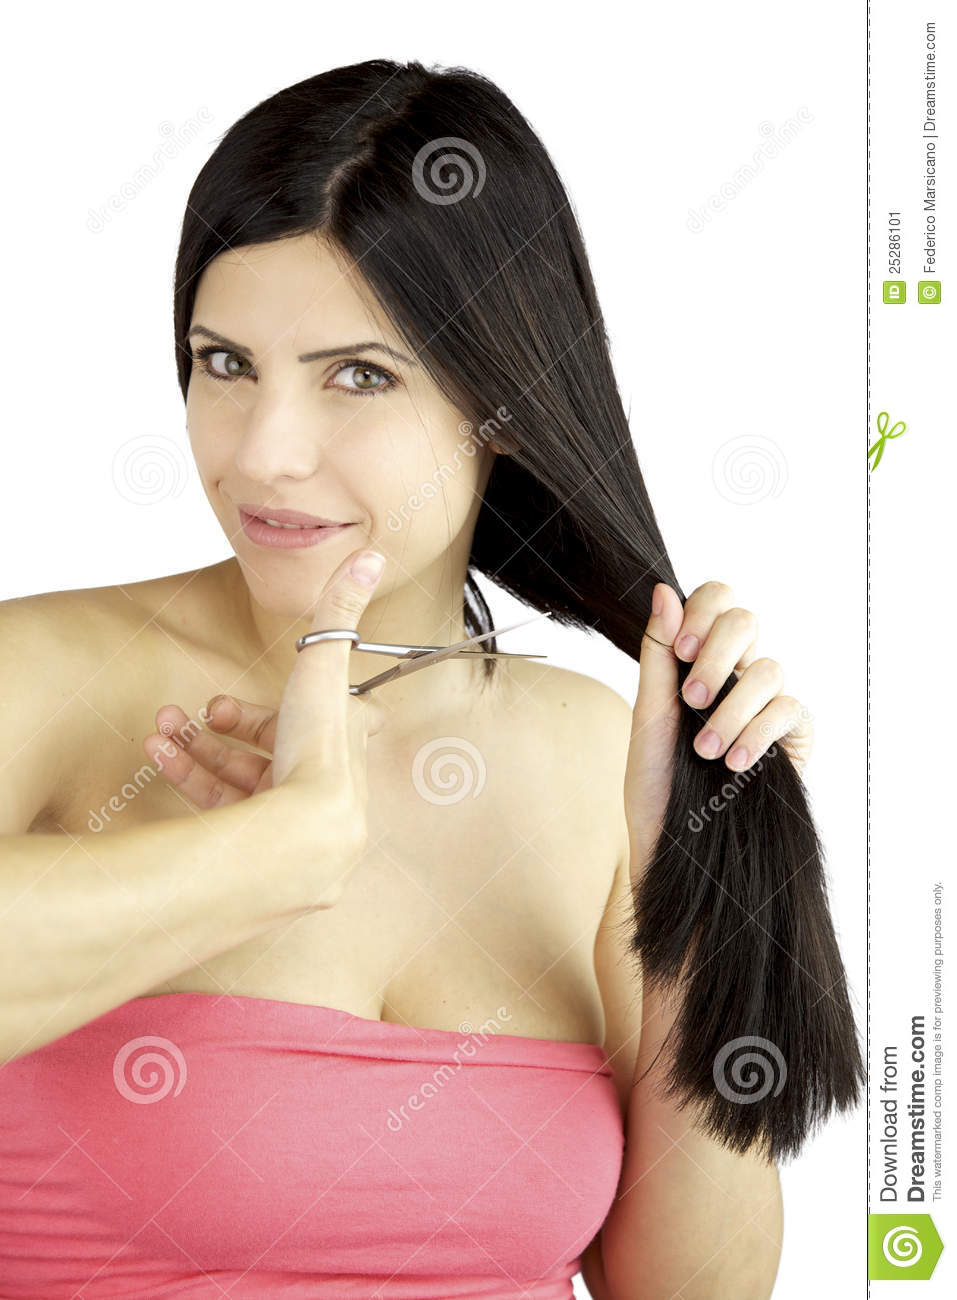 Beautiful Hair Cutting : More similar stock images of ` Beautiful woman cutting her long hair `